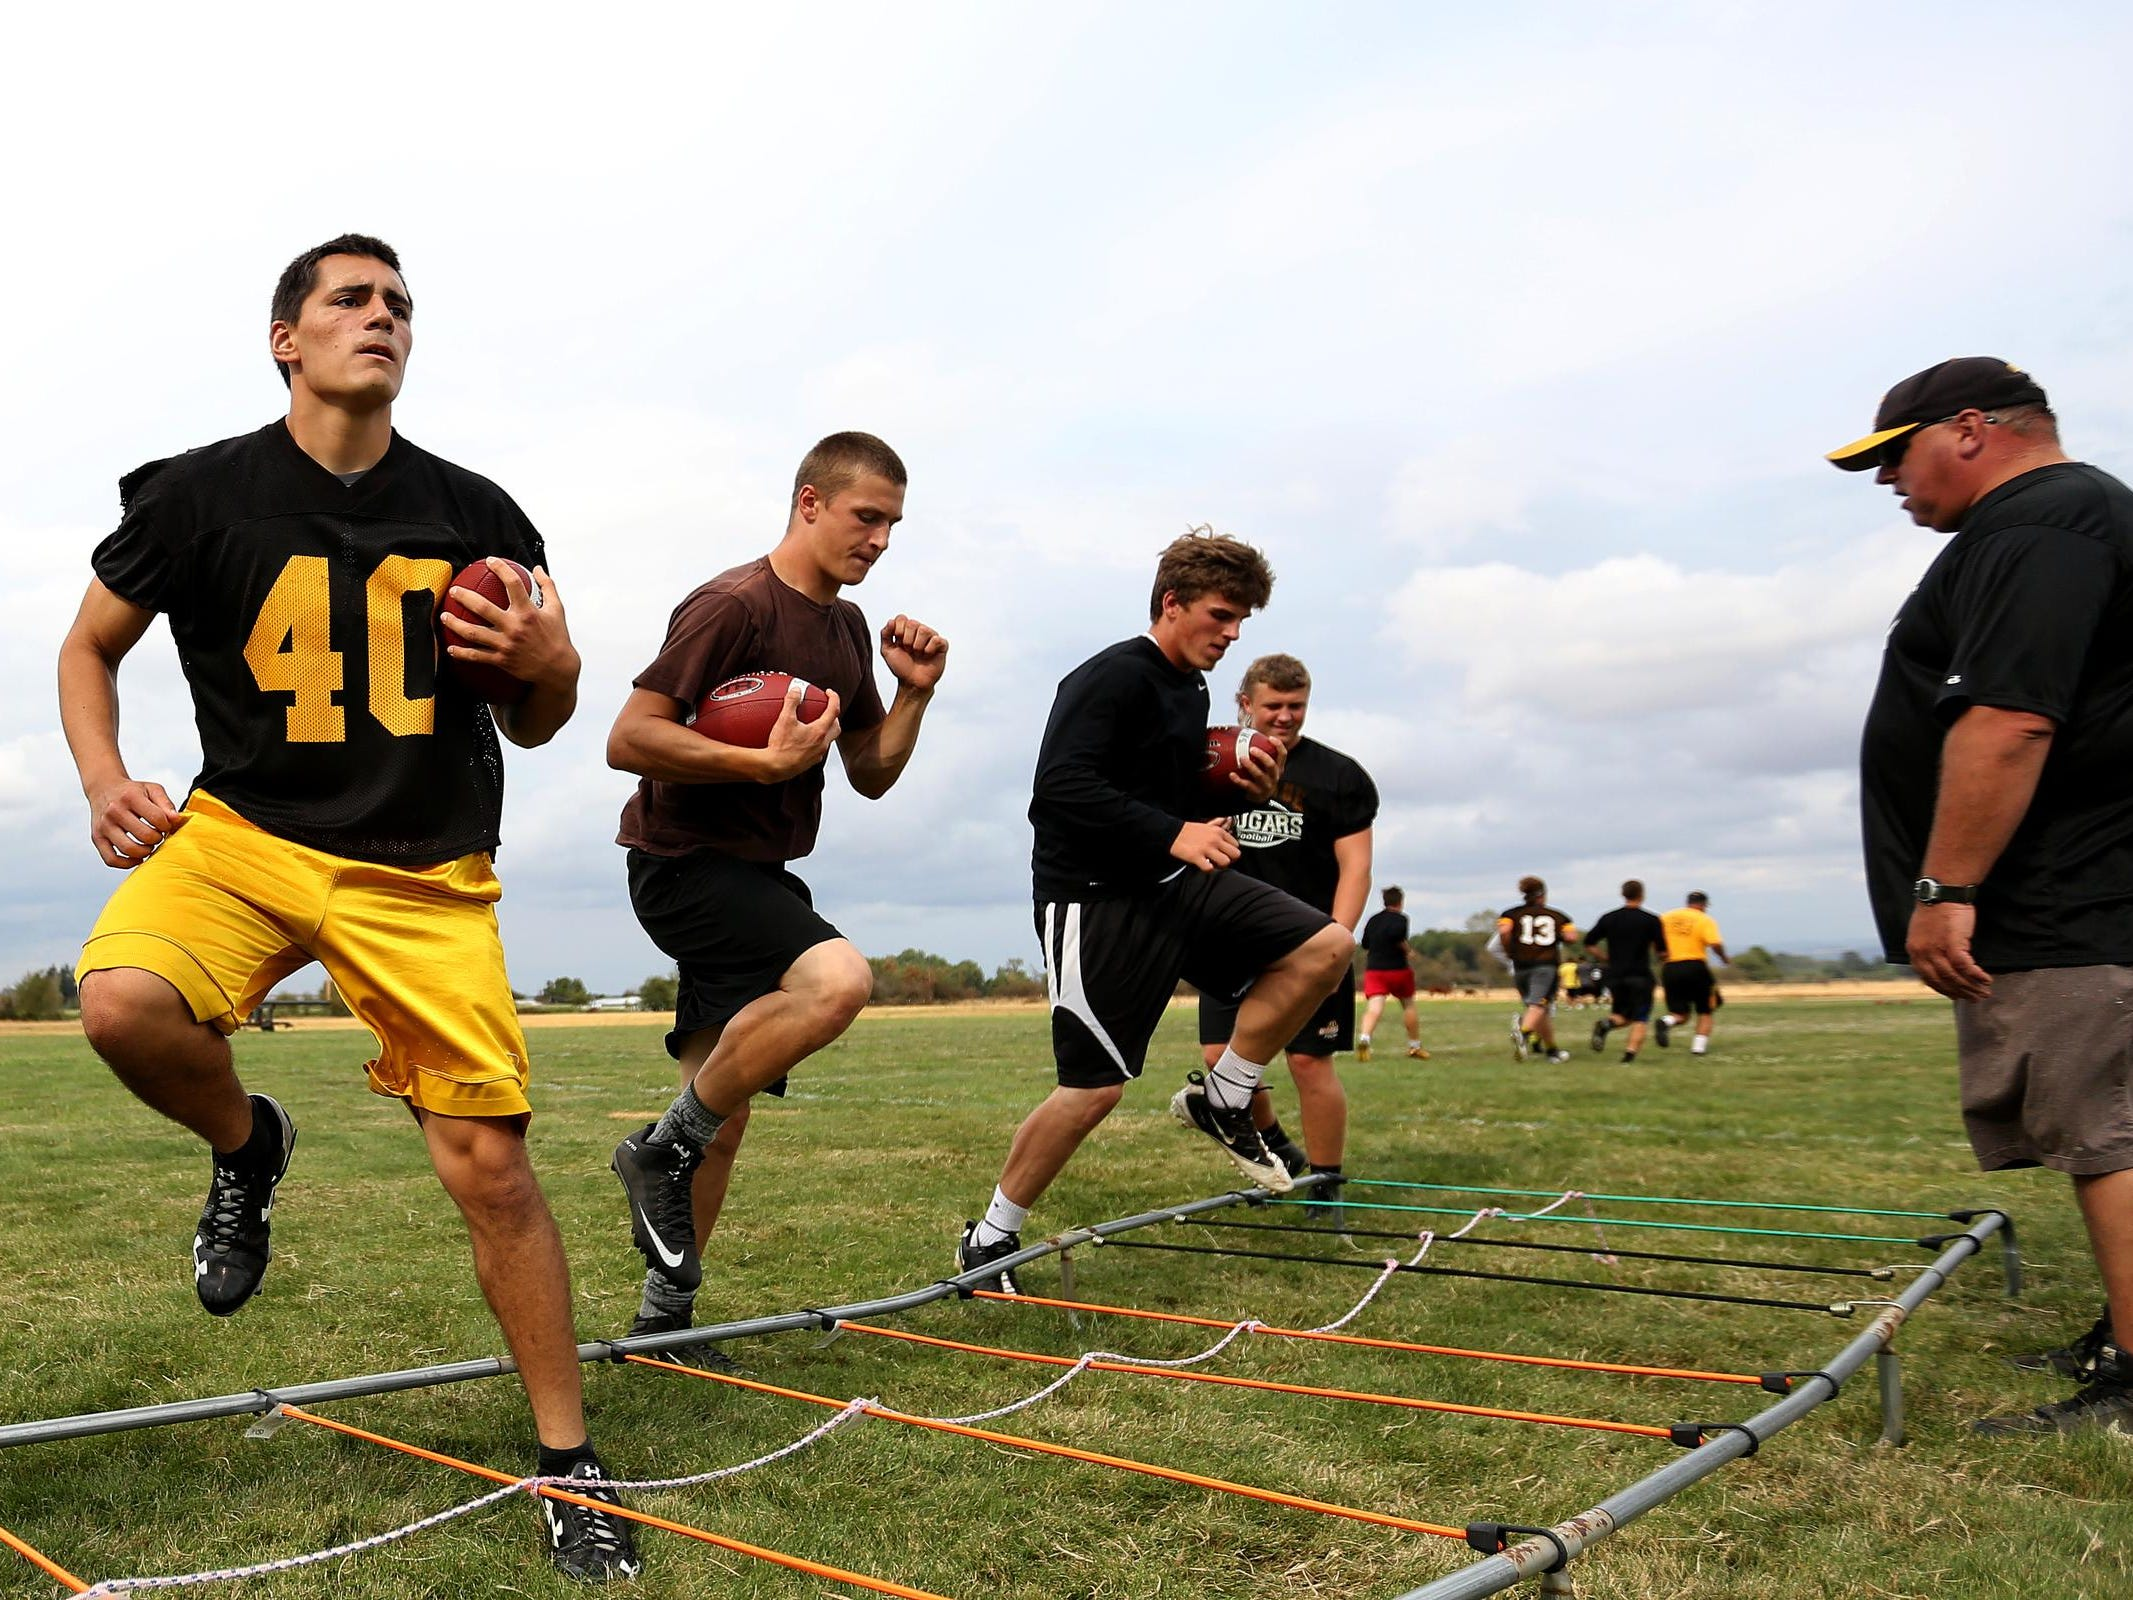 Malachi Gonzalez, left, a senior full back and line backer, runs drills during football practice at Cascade High School in Turner, Ore., on Friday, Aug. 14, 2015.